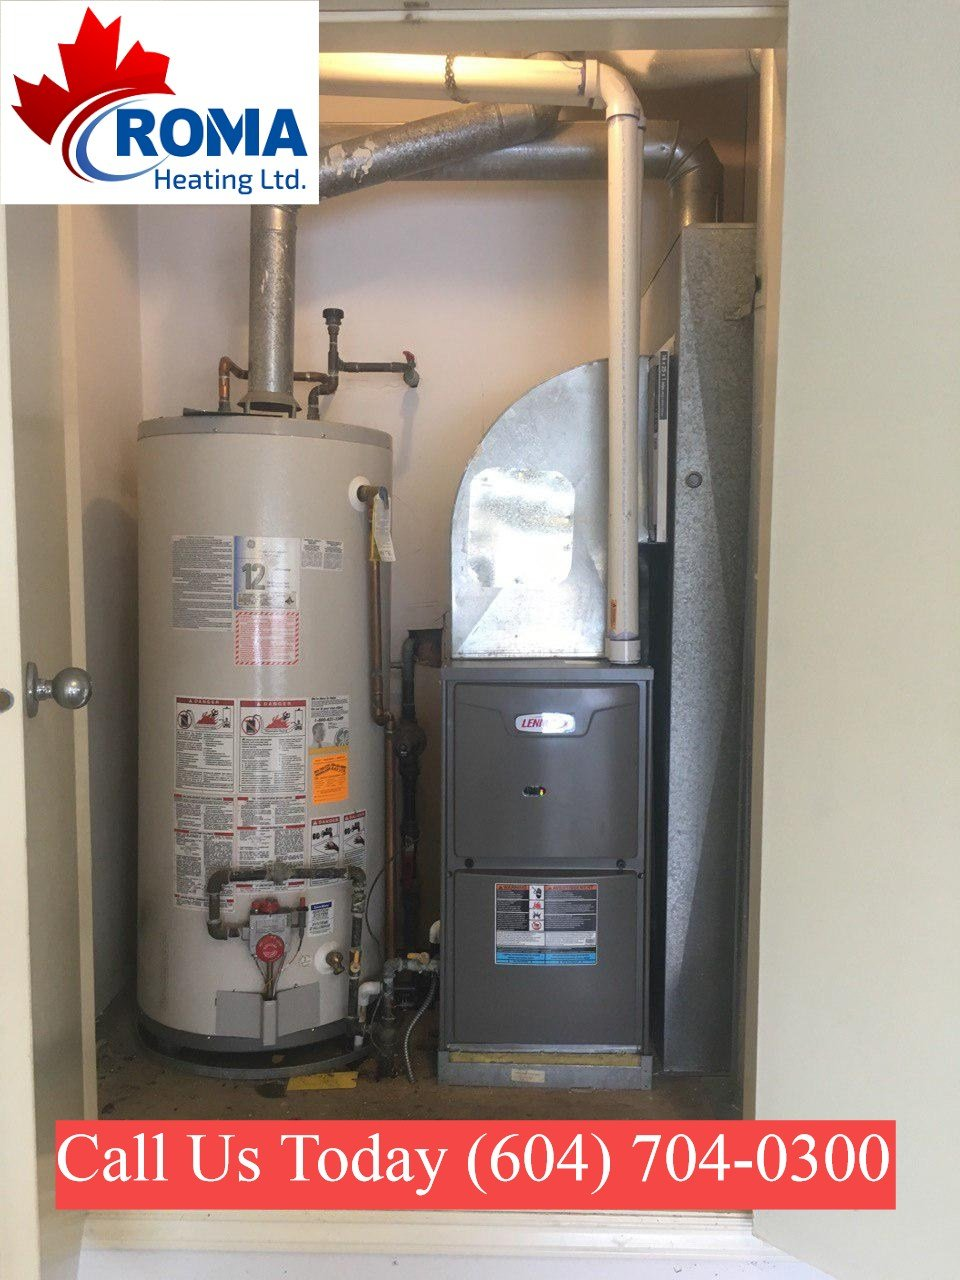 Furnace Service and Maintenance Vancouver, Furnace Service and Maintenance Vancouver